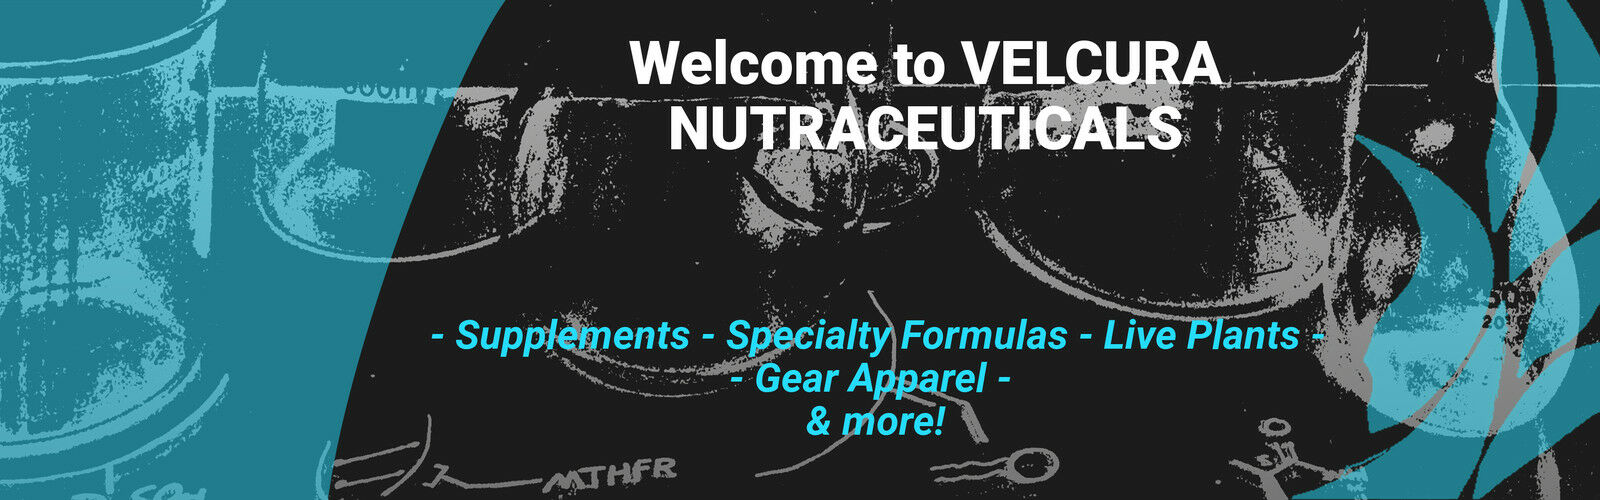 VelcuraNutraceuticals